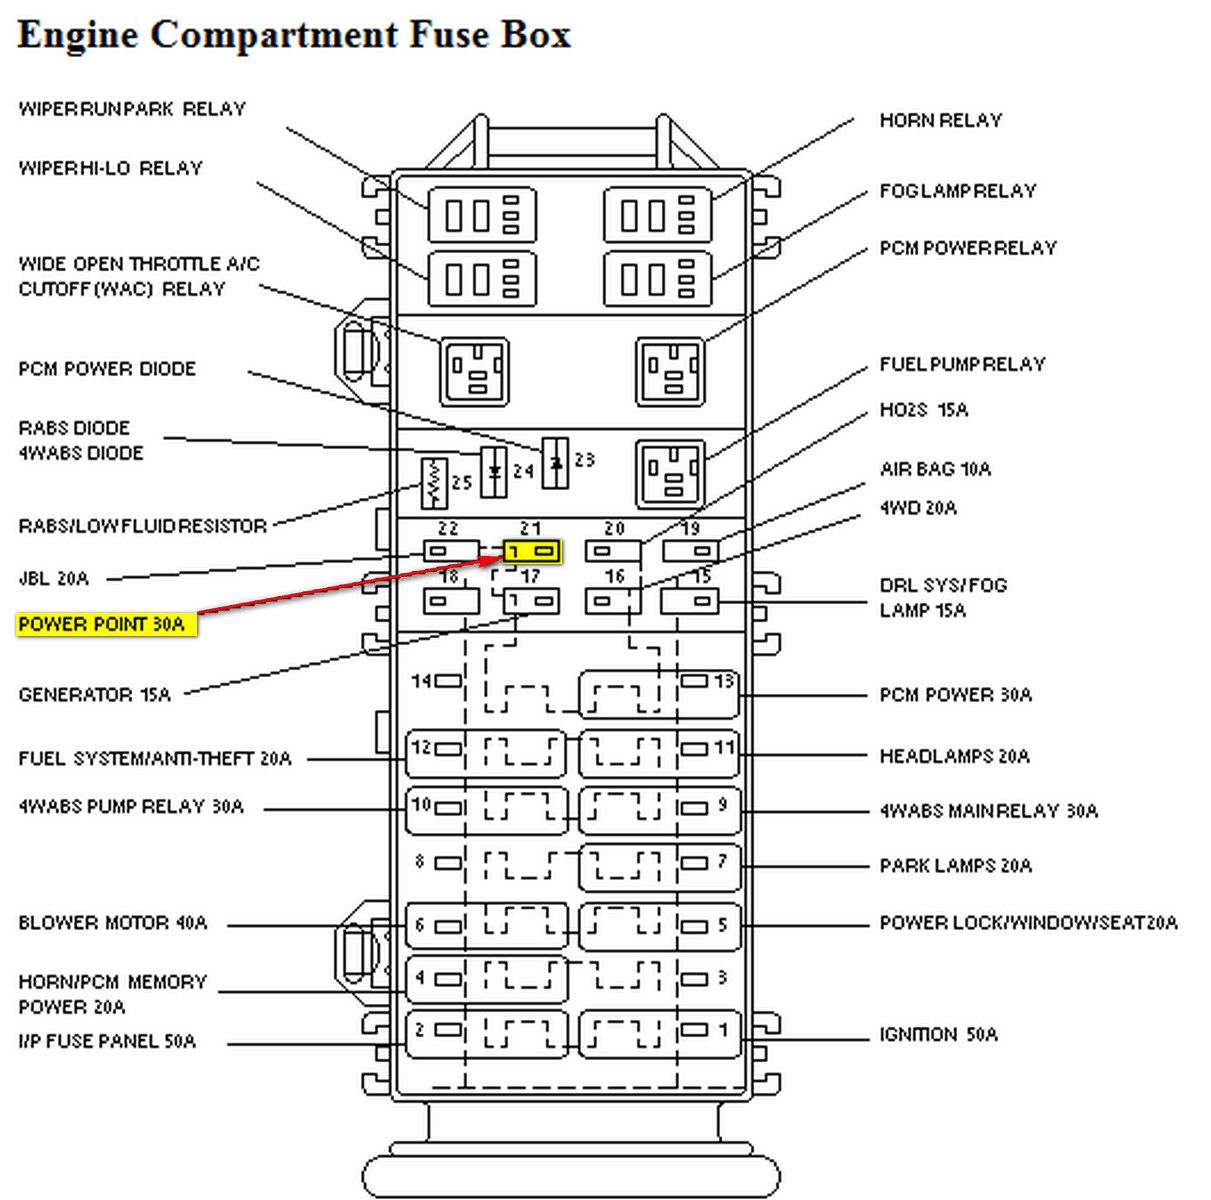 8a55967da7ae1bd251b795845886bd24 96 explorer fuse panel schematic ford explorer 4x4 hello, 1996 2007 ford ranger fuse box at alyssarenee.co